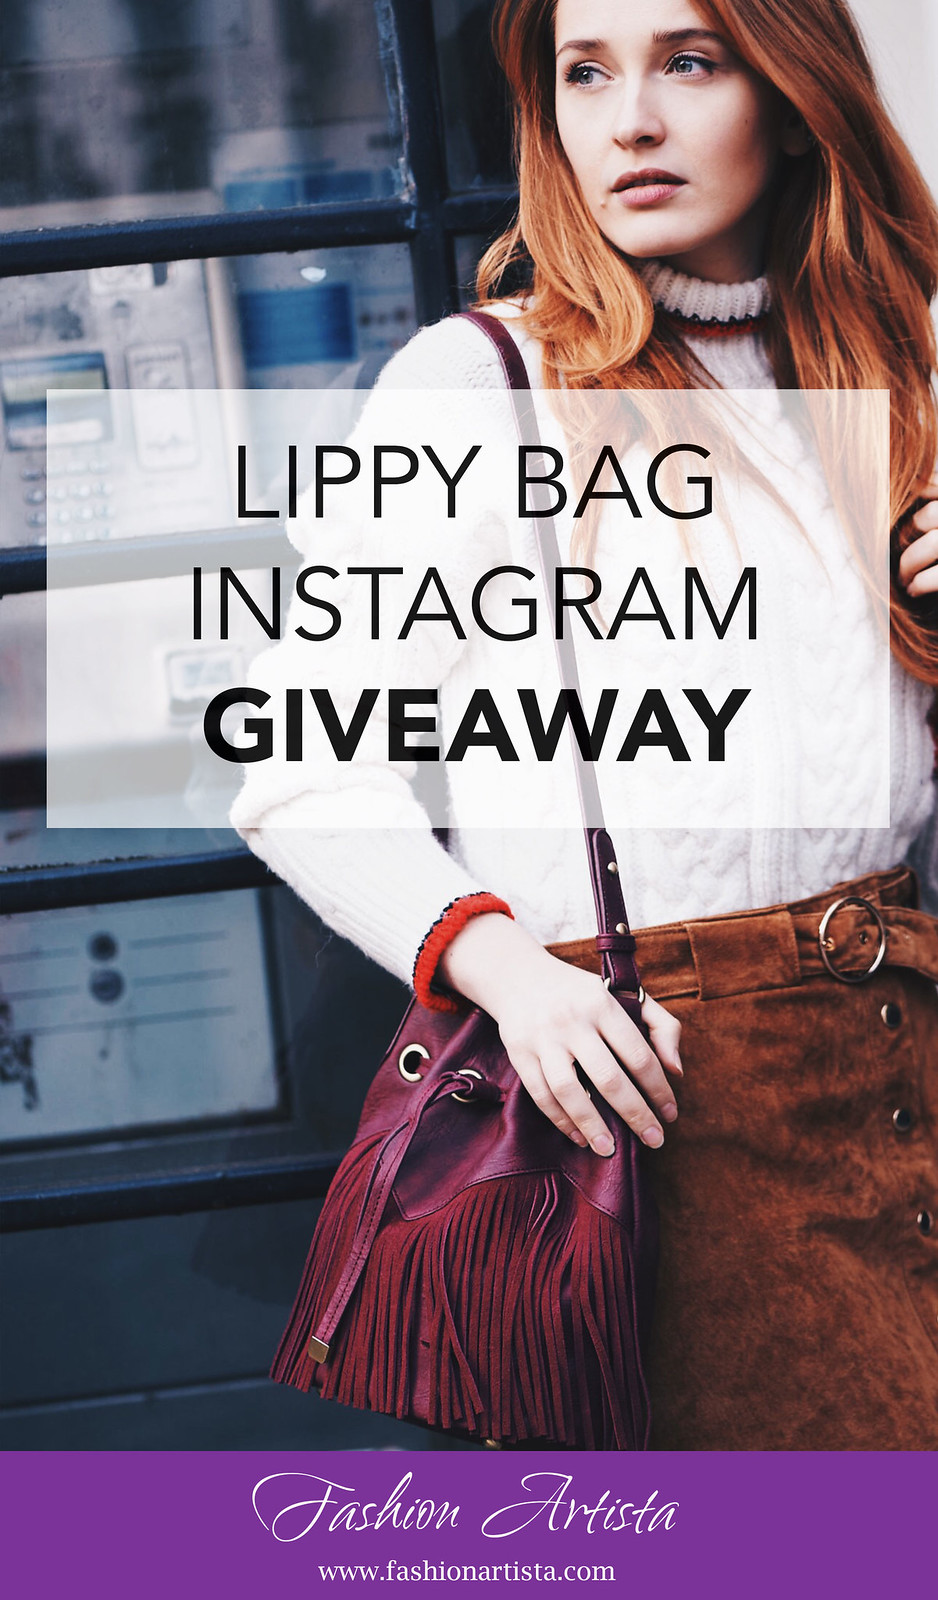 Lippy Bag instagram GIVEAWAY - www.fashionartista.com